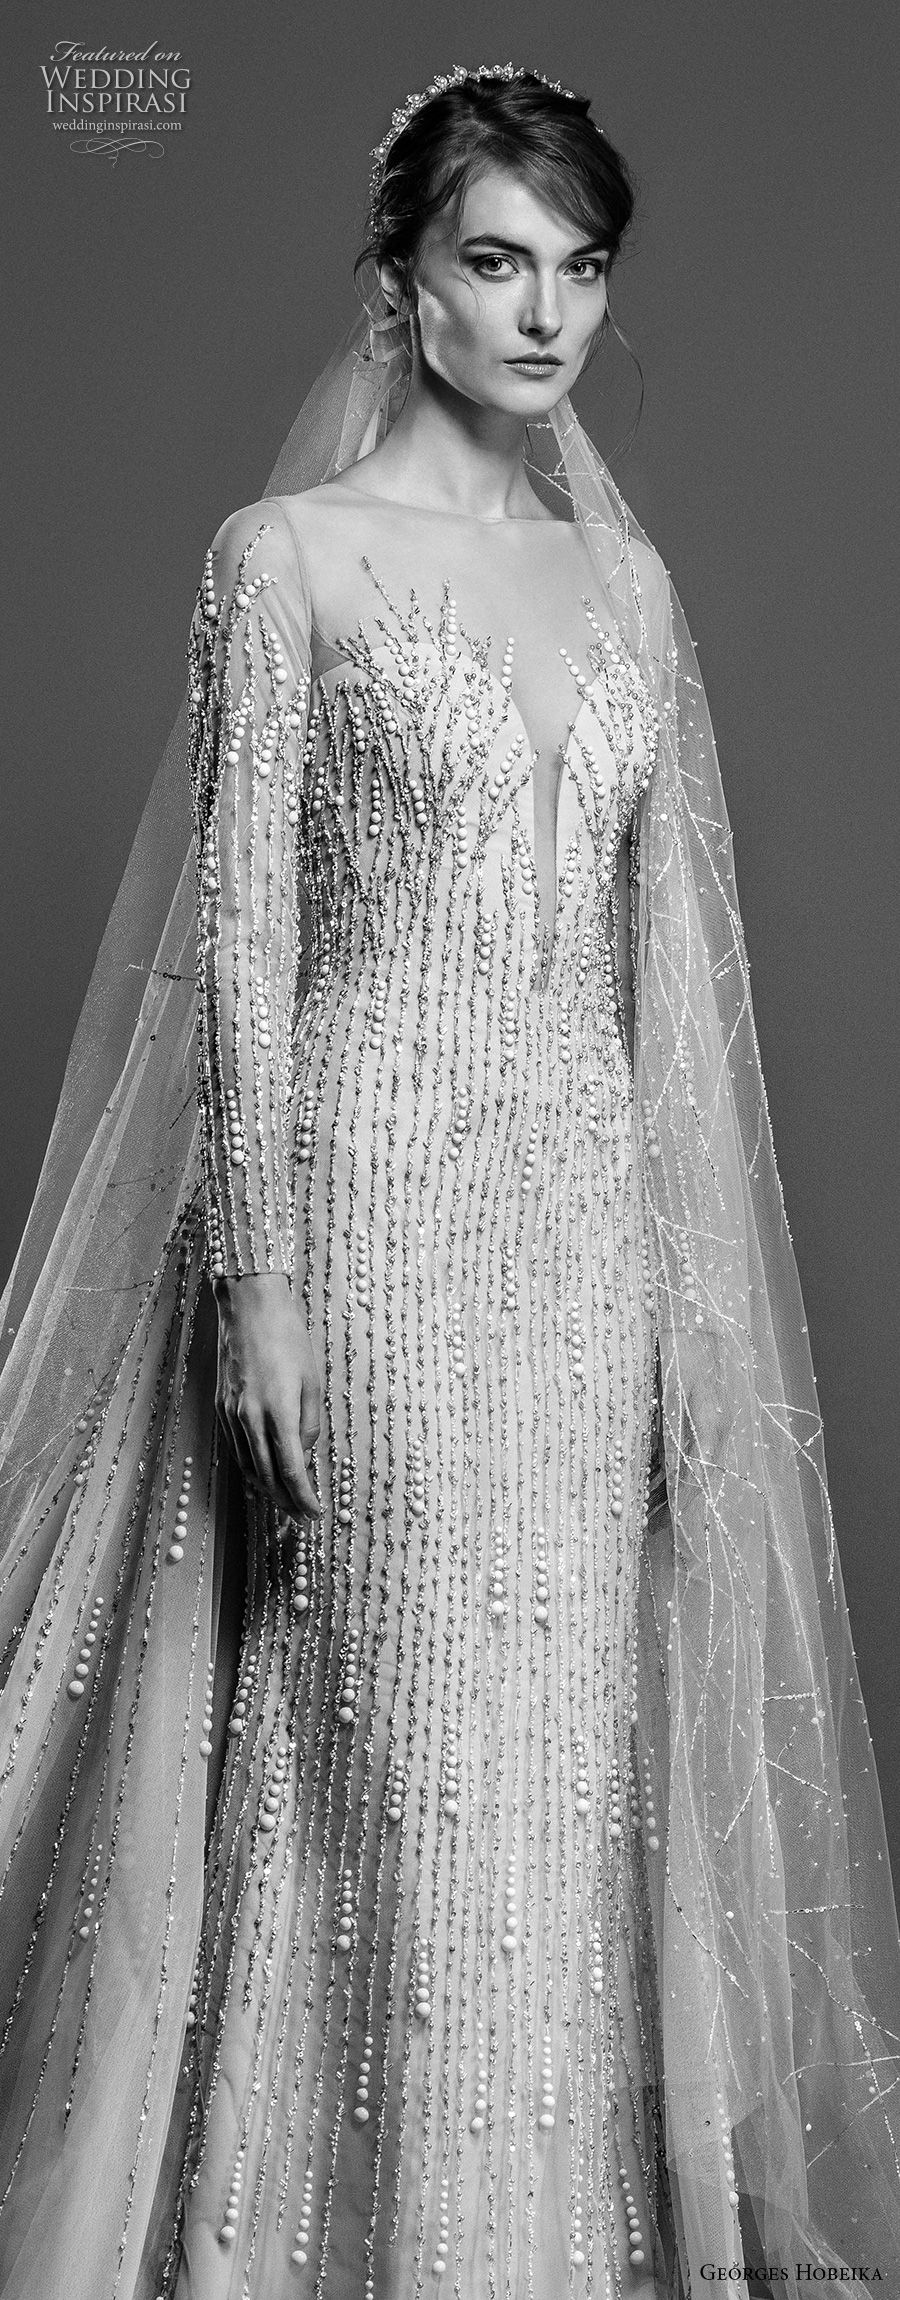 georges hobeika spring 2019 bridal long sleeves illusion jewel deep plunging sweetheart neckline glitzy elegant sheath wedding dress chapel train (6) zv